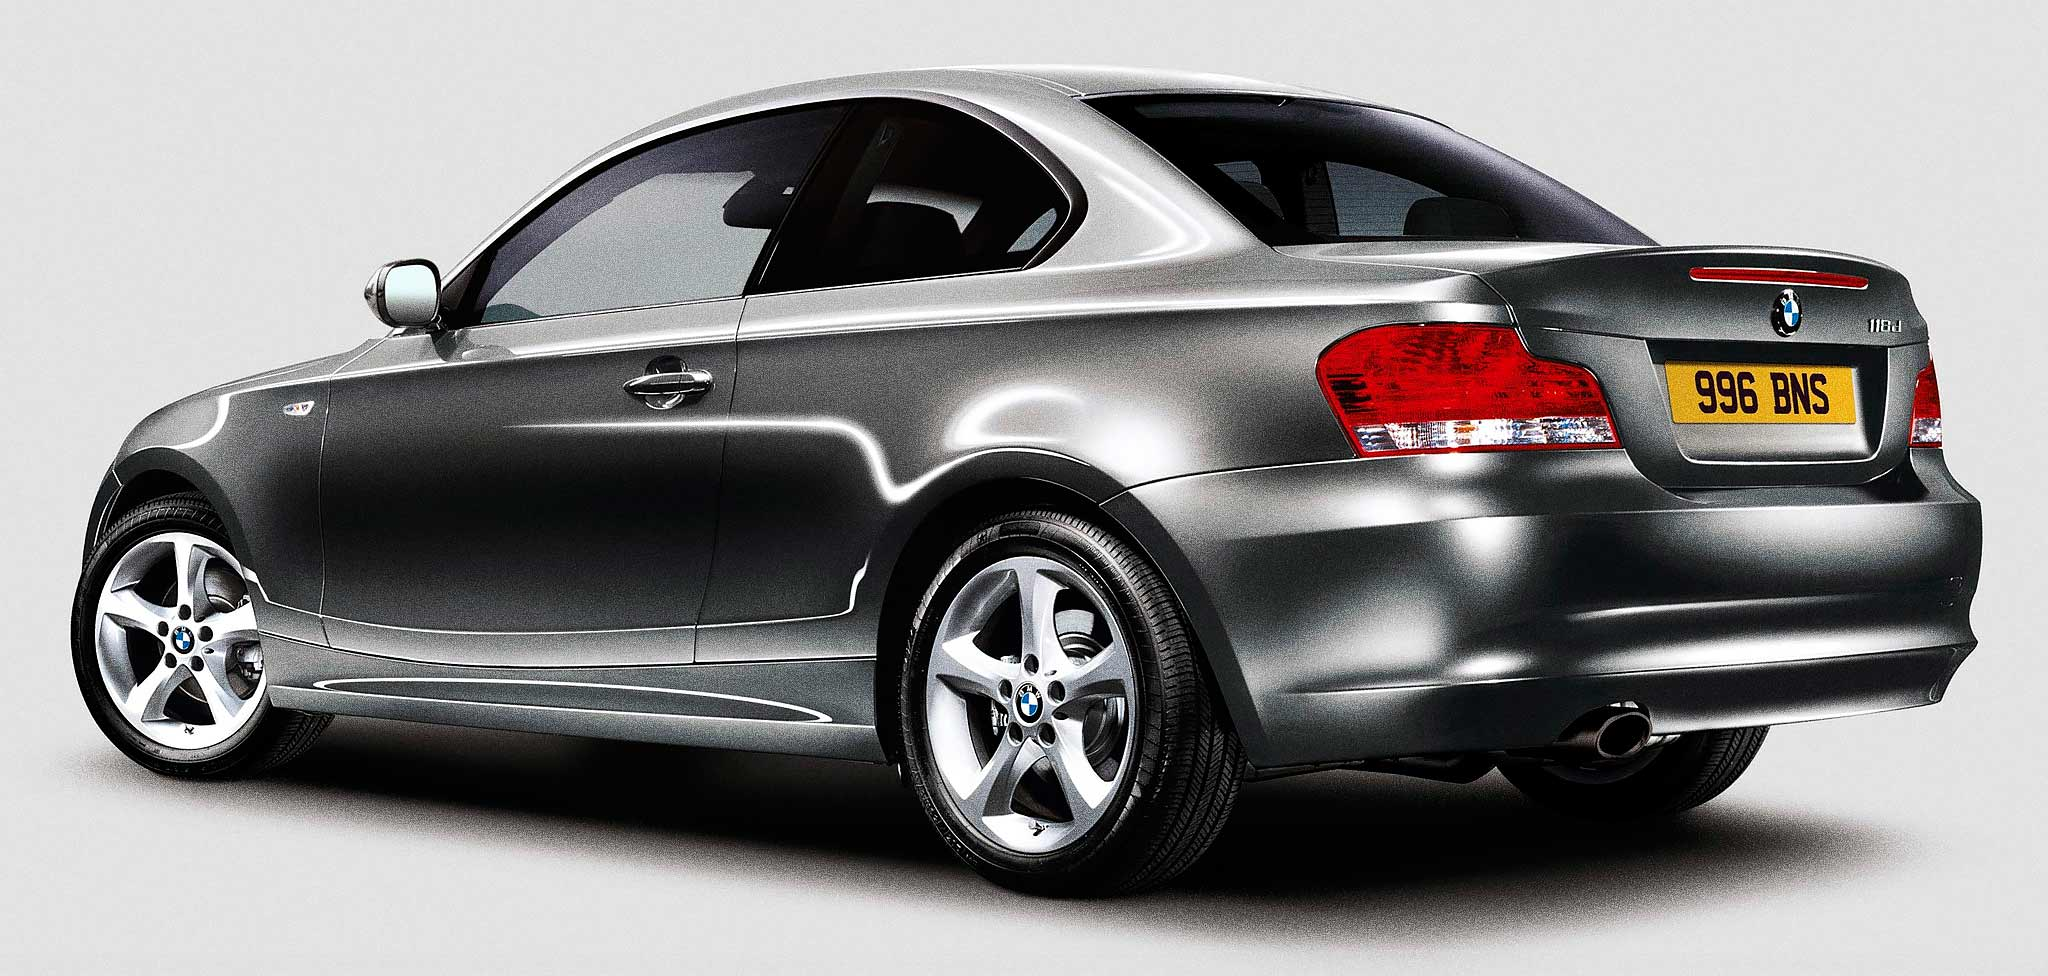 Trouble-shooter down-to-earth advice on buying an early BMW 1 Series